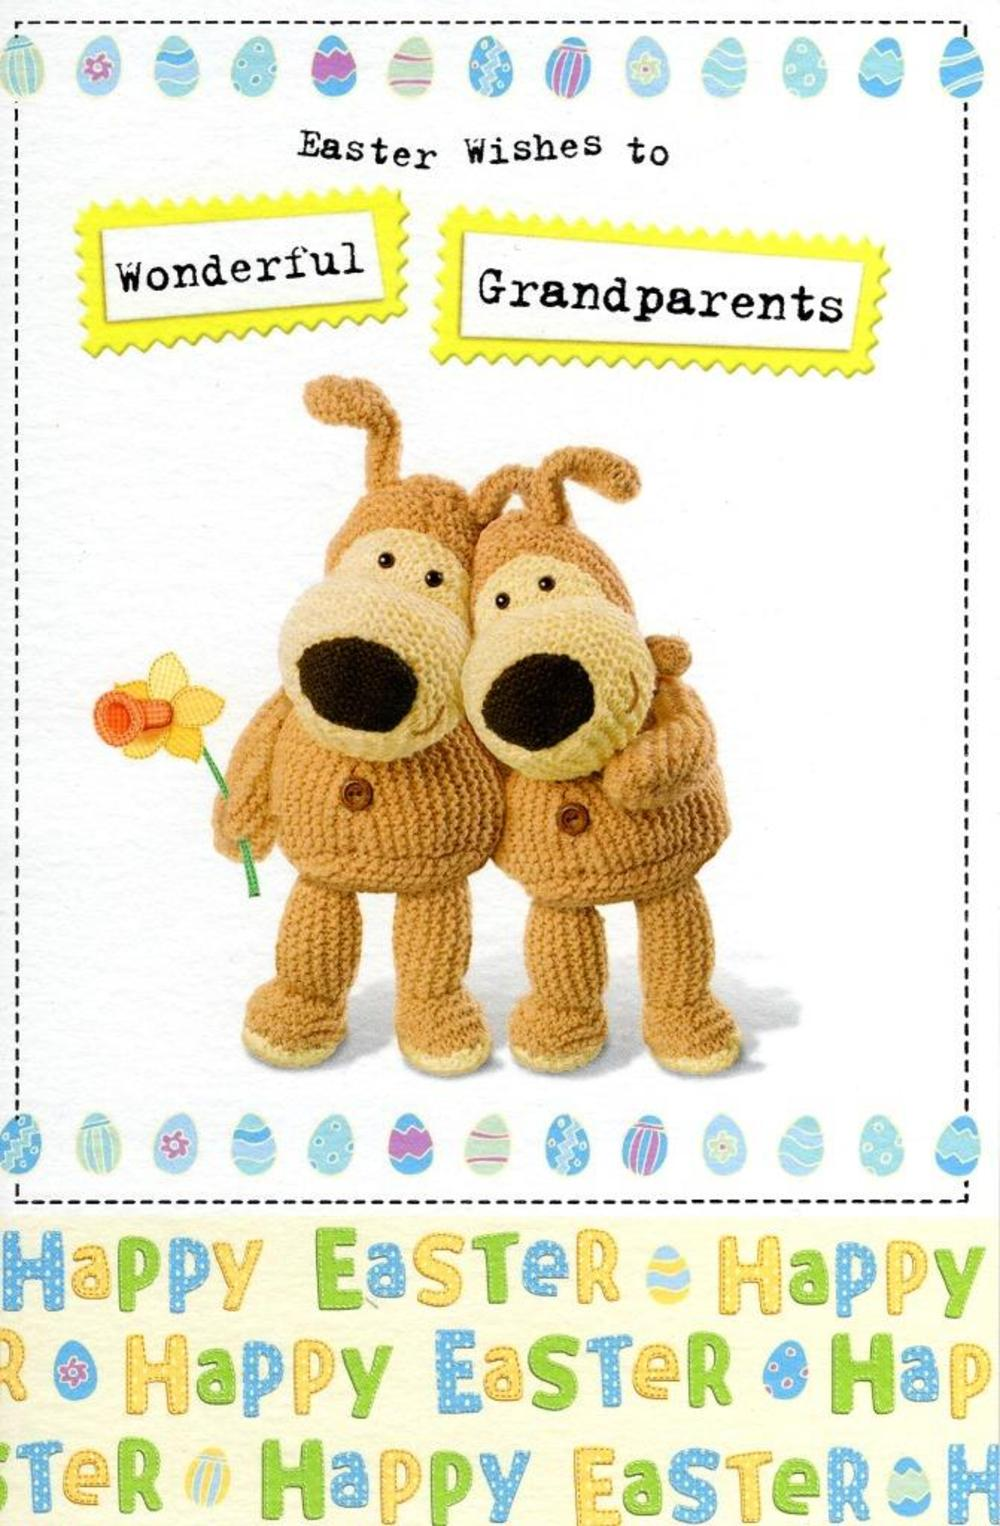 Boofle Grandparents Happy Easter Greeting Card